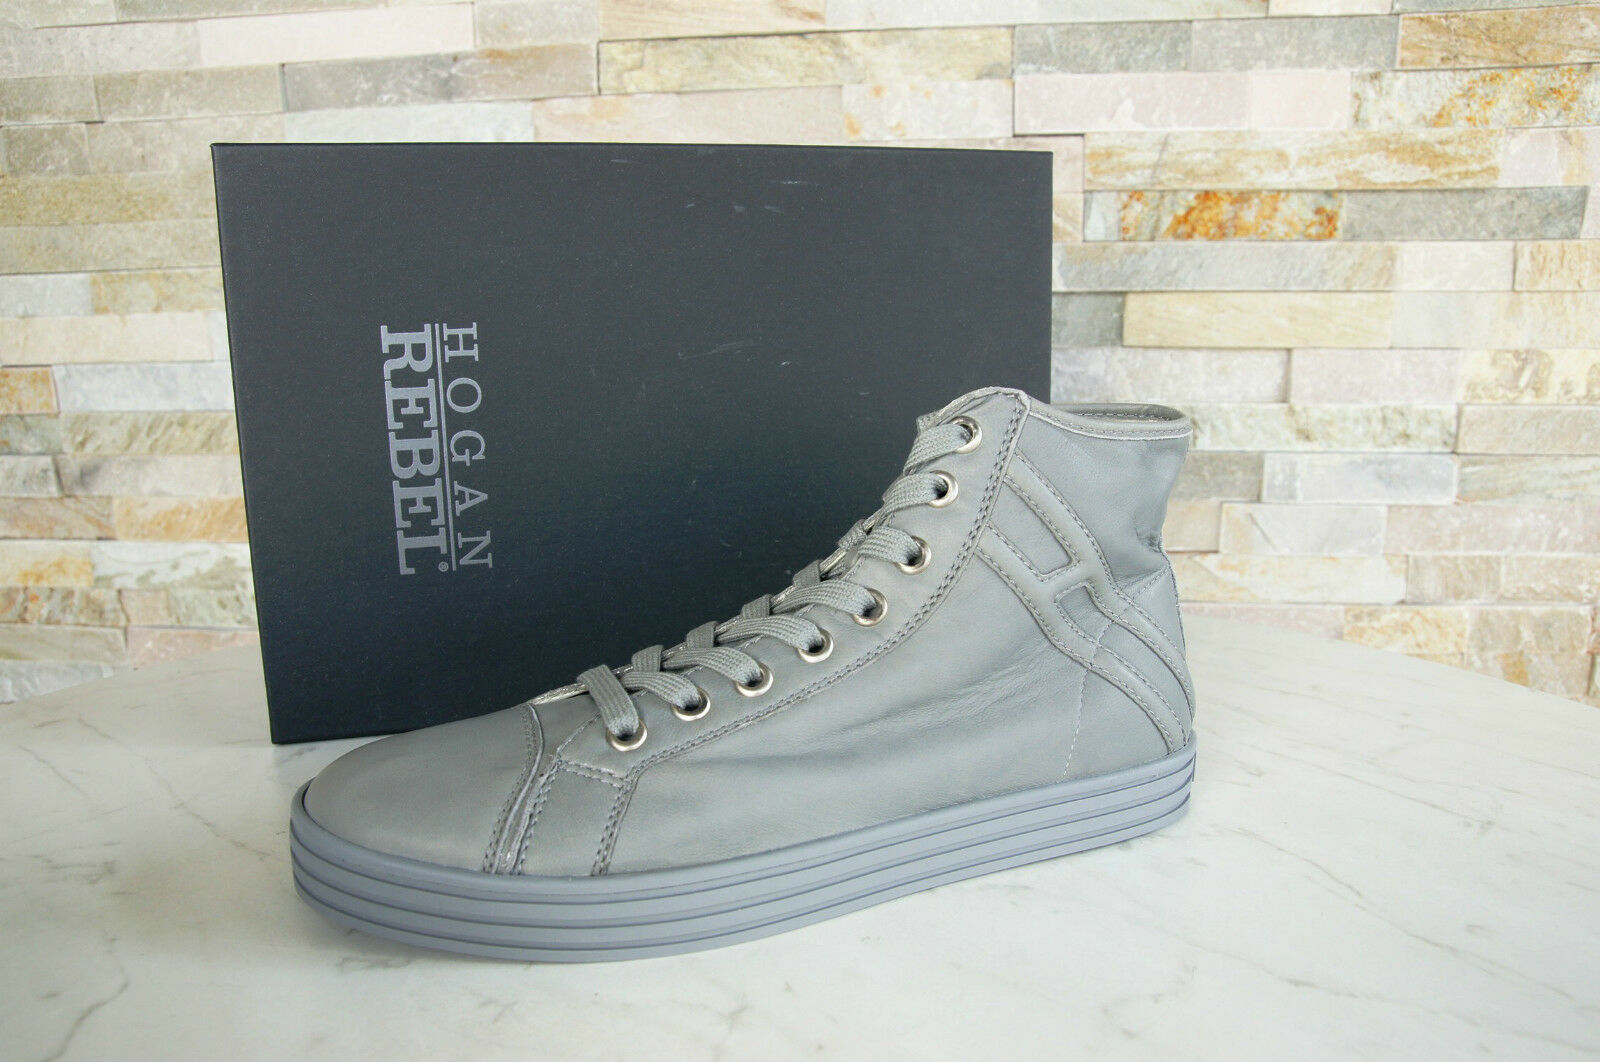 HOGAN REBEL 43 9 High-Top Sneakers Lace Up Shoes Grey Grey NEW